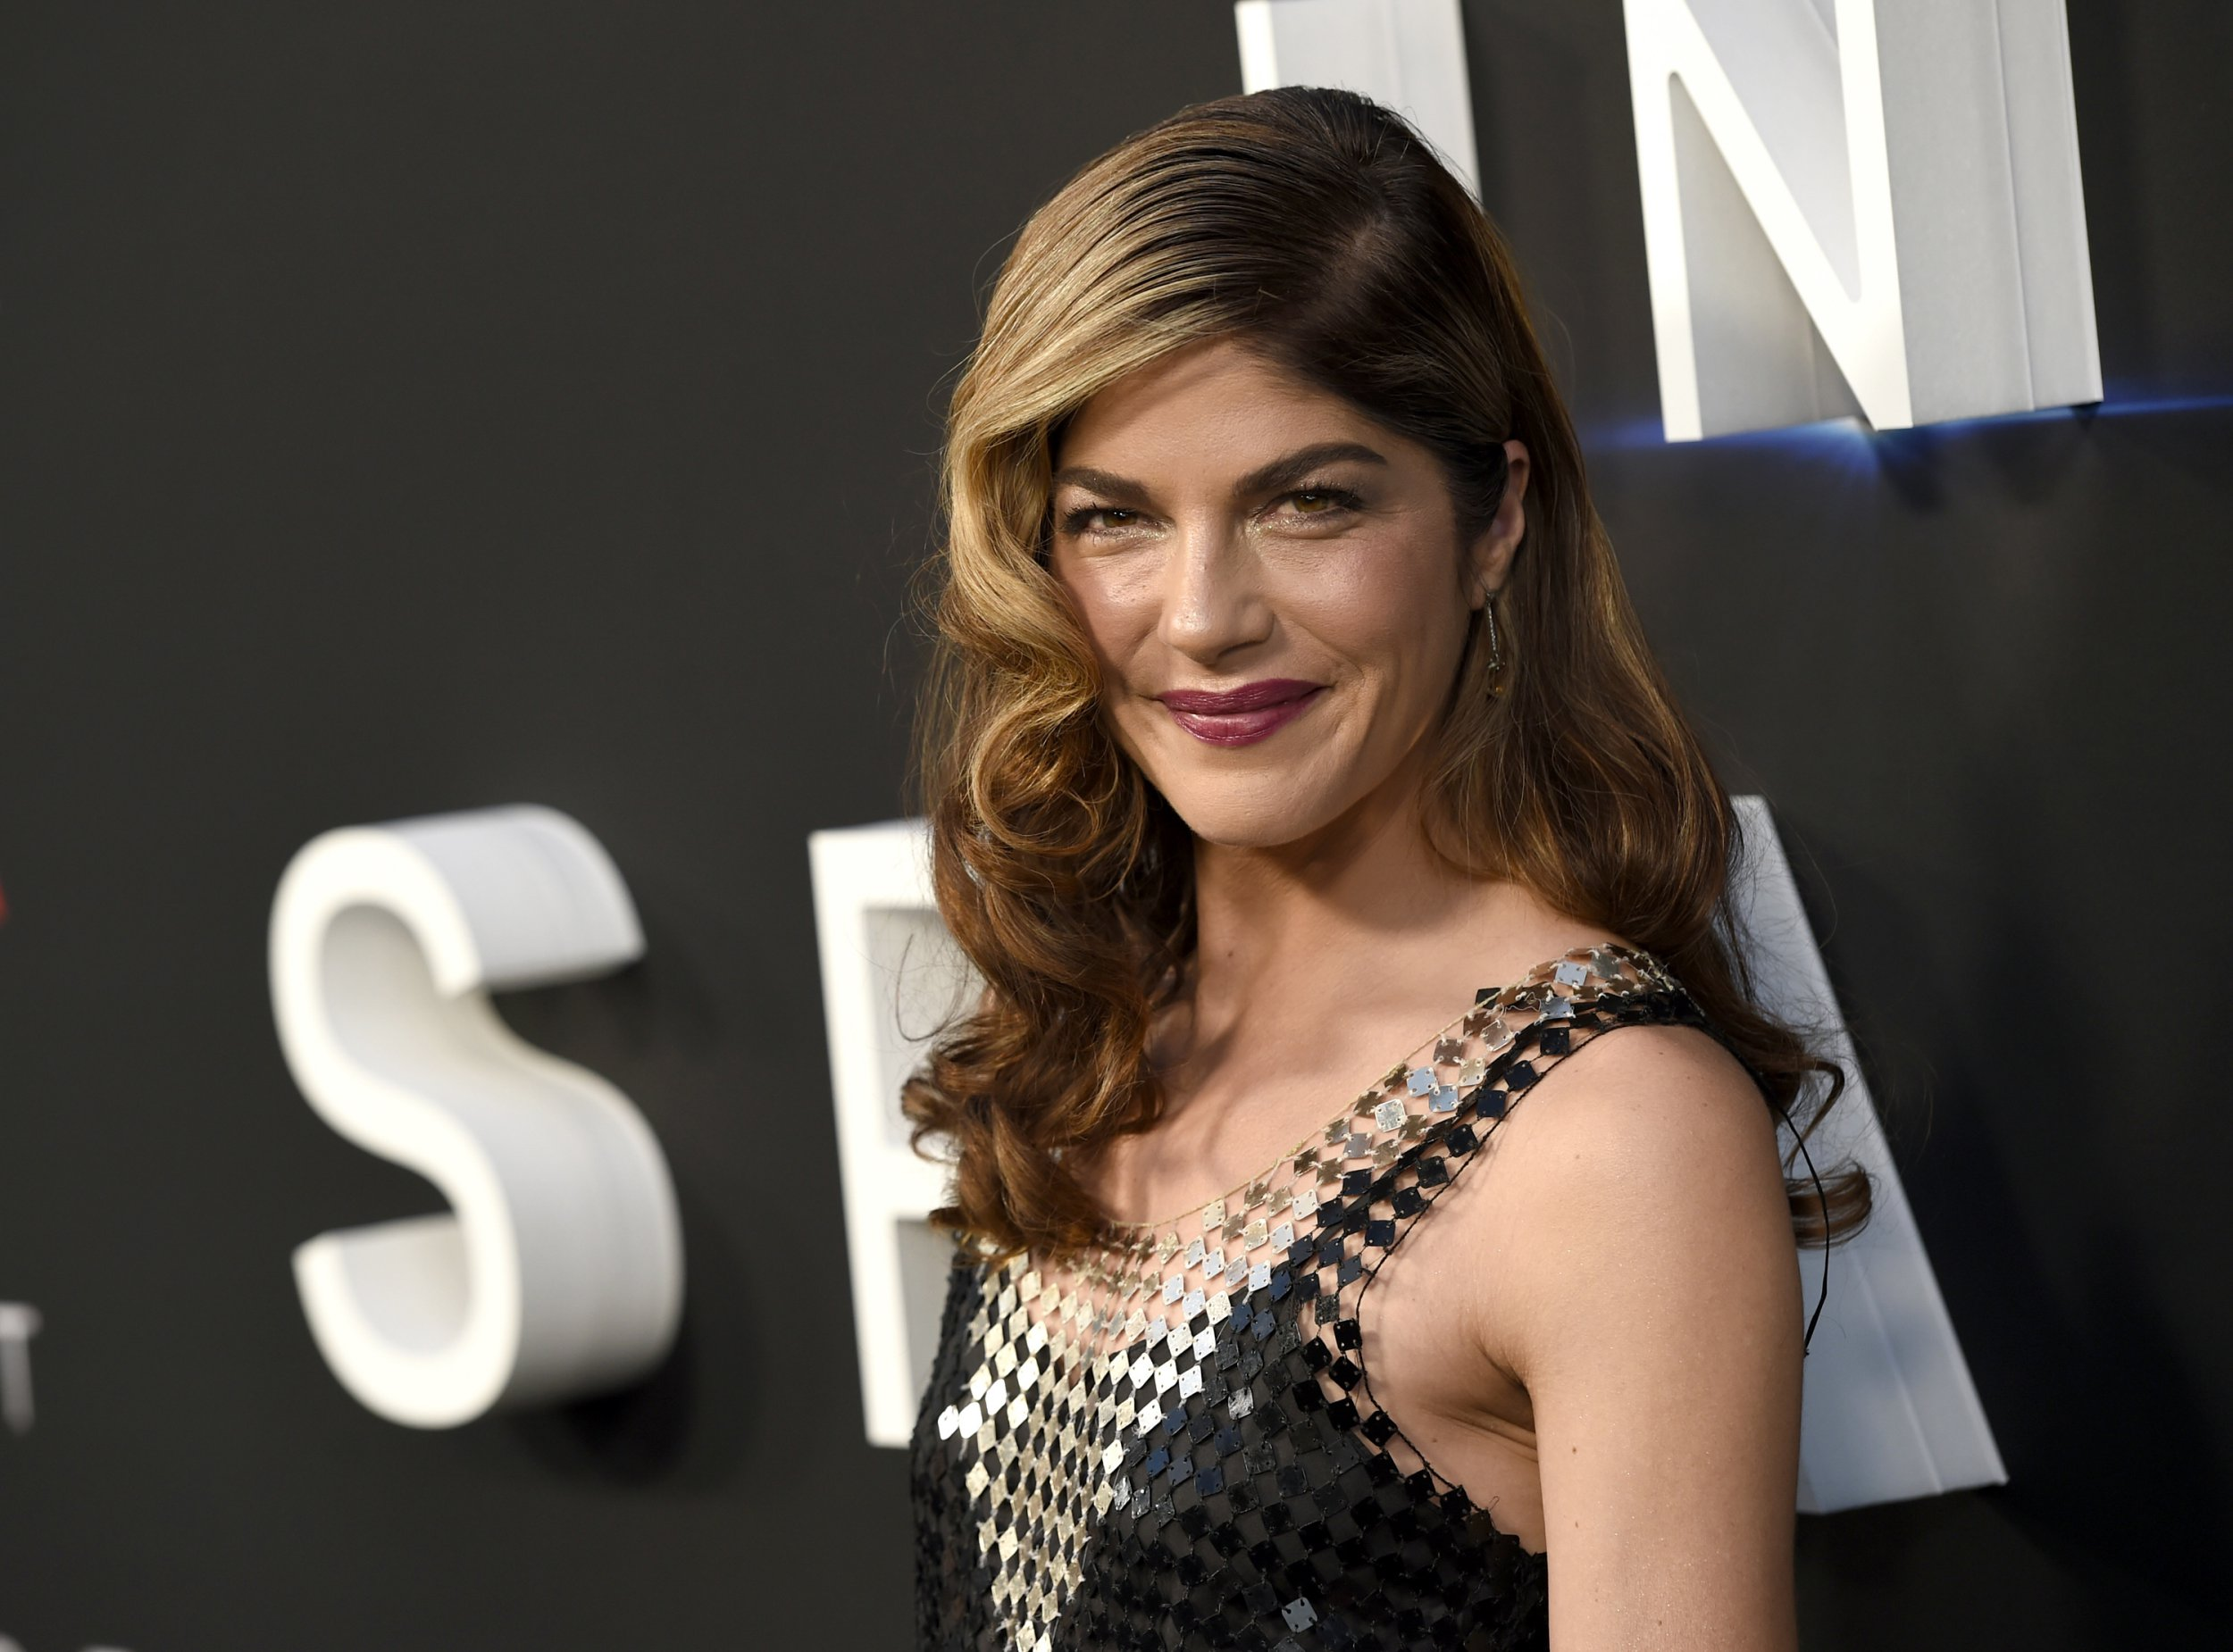 """FILE - In this April 9, 2018 file photo, Selma Blair arrives at the Los Angeles premiere of """"Lost in Space"""" at the ArcLight Cinerama Dome. The film and TV actress has announced she is dealing with a diagnosis of multiple sclerosis. In a post Saturday, Oct. 20, 2018 on her Instagram account, Blair, 46, says she was diagnosed with the disease of the central nervous system on Aug. 16. (Photo by Chris Pizzello/Invision/AP, File)"""